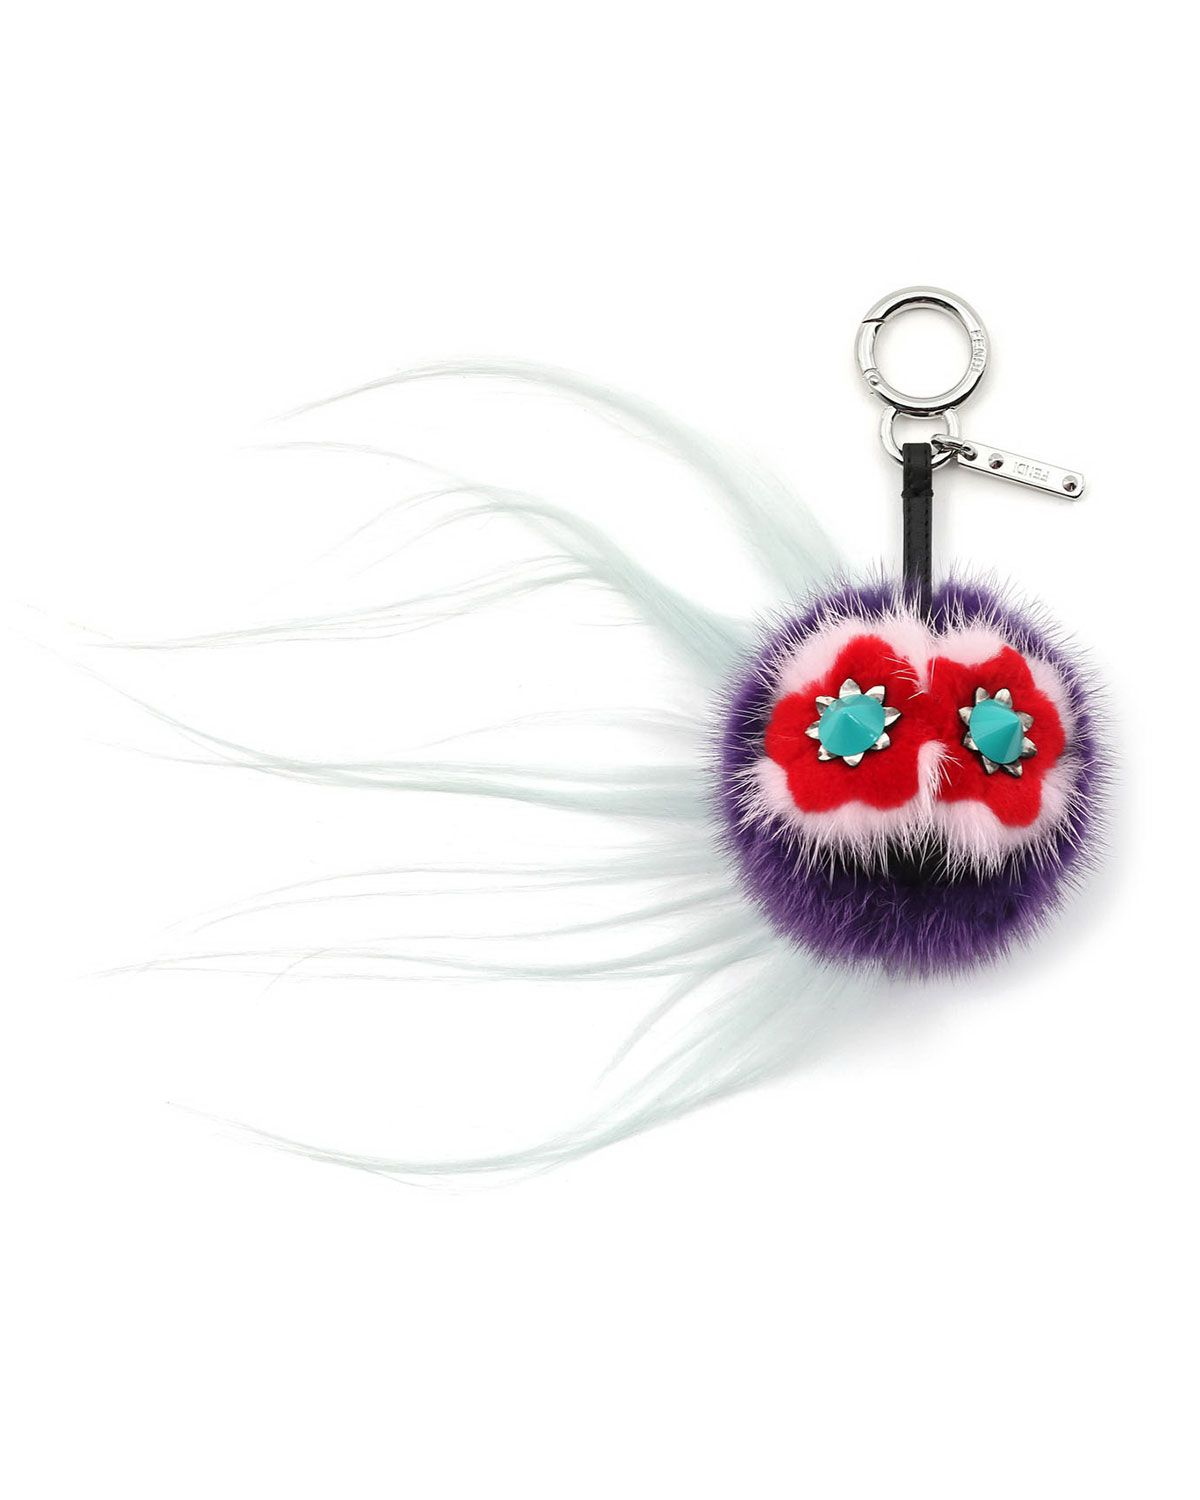 d40d1f0c24a2 Bug Monster Fur Key Chain